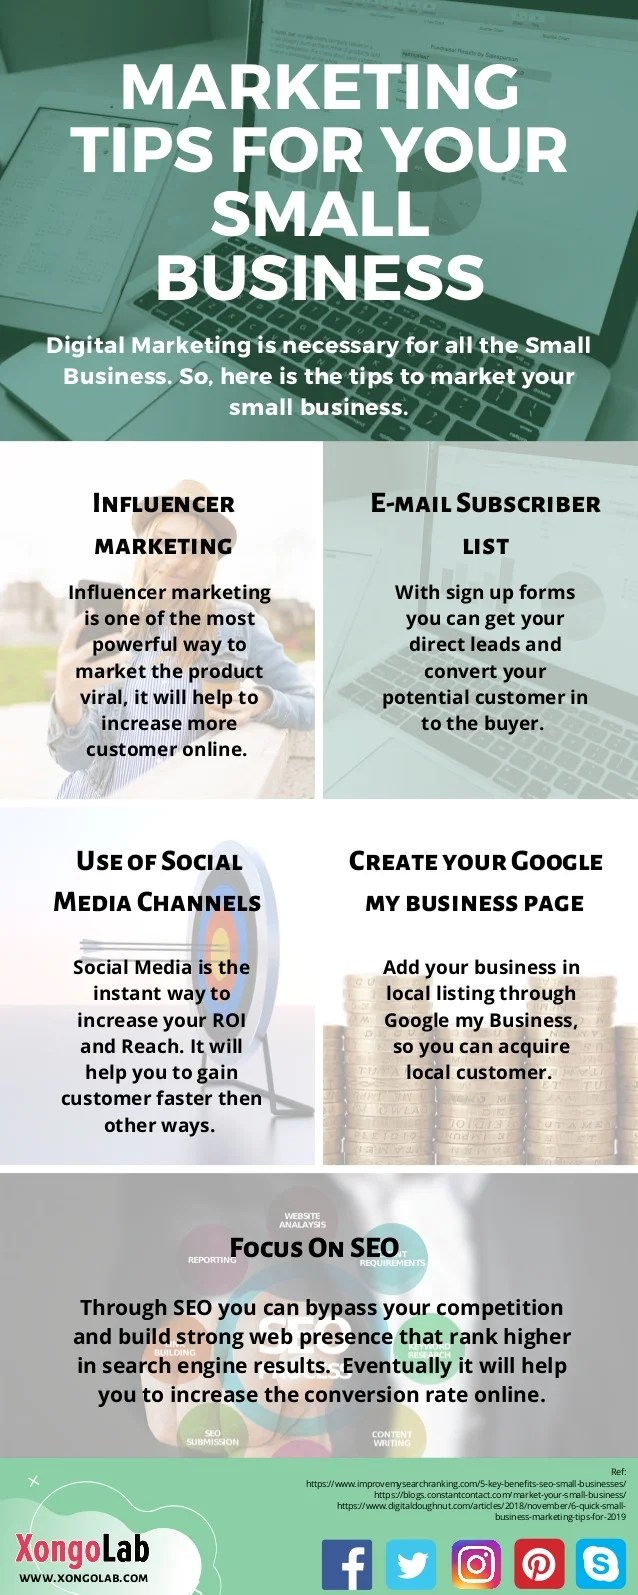 local business marketing tips